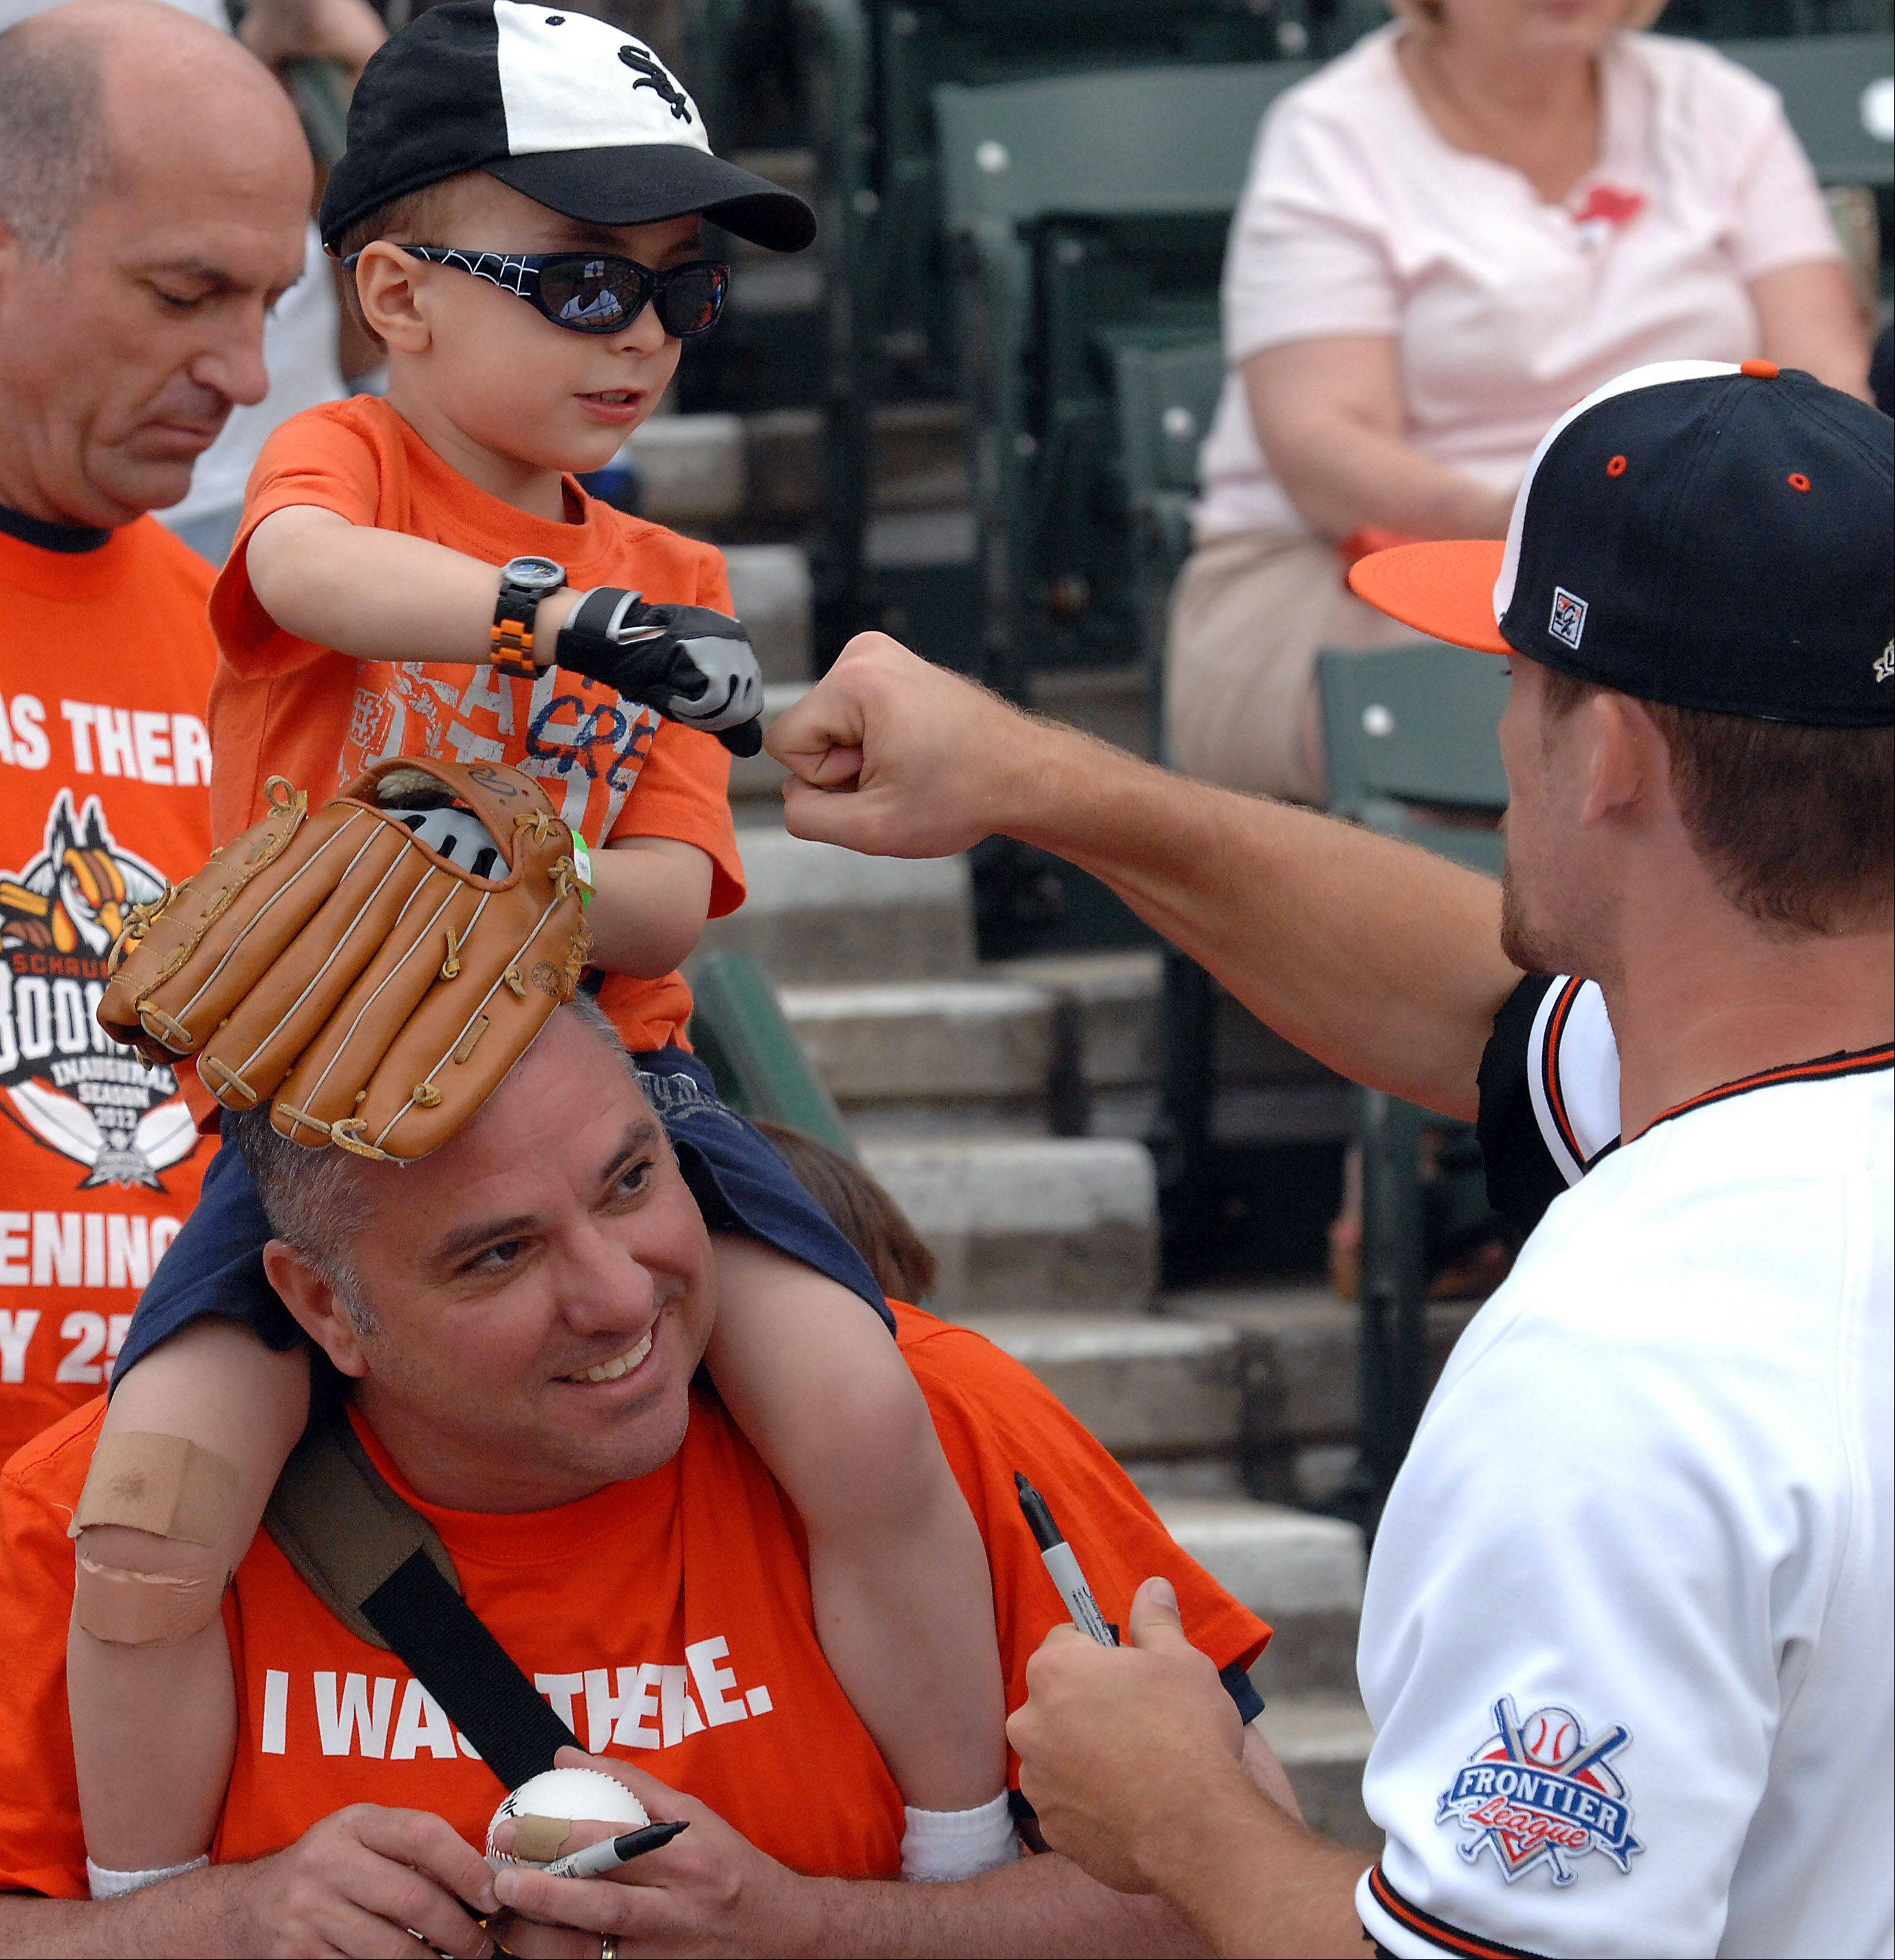 Baseball fans Brian Dykes and his son Calvin, 3, of Glen Ellyn bump fists with player Chad Mozingo at Boomers Stadium in Schaumburg on Friday.